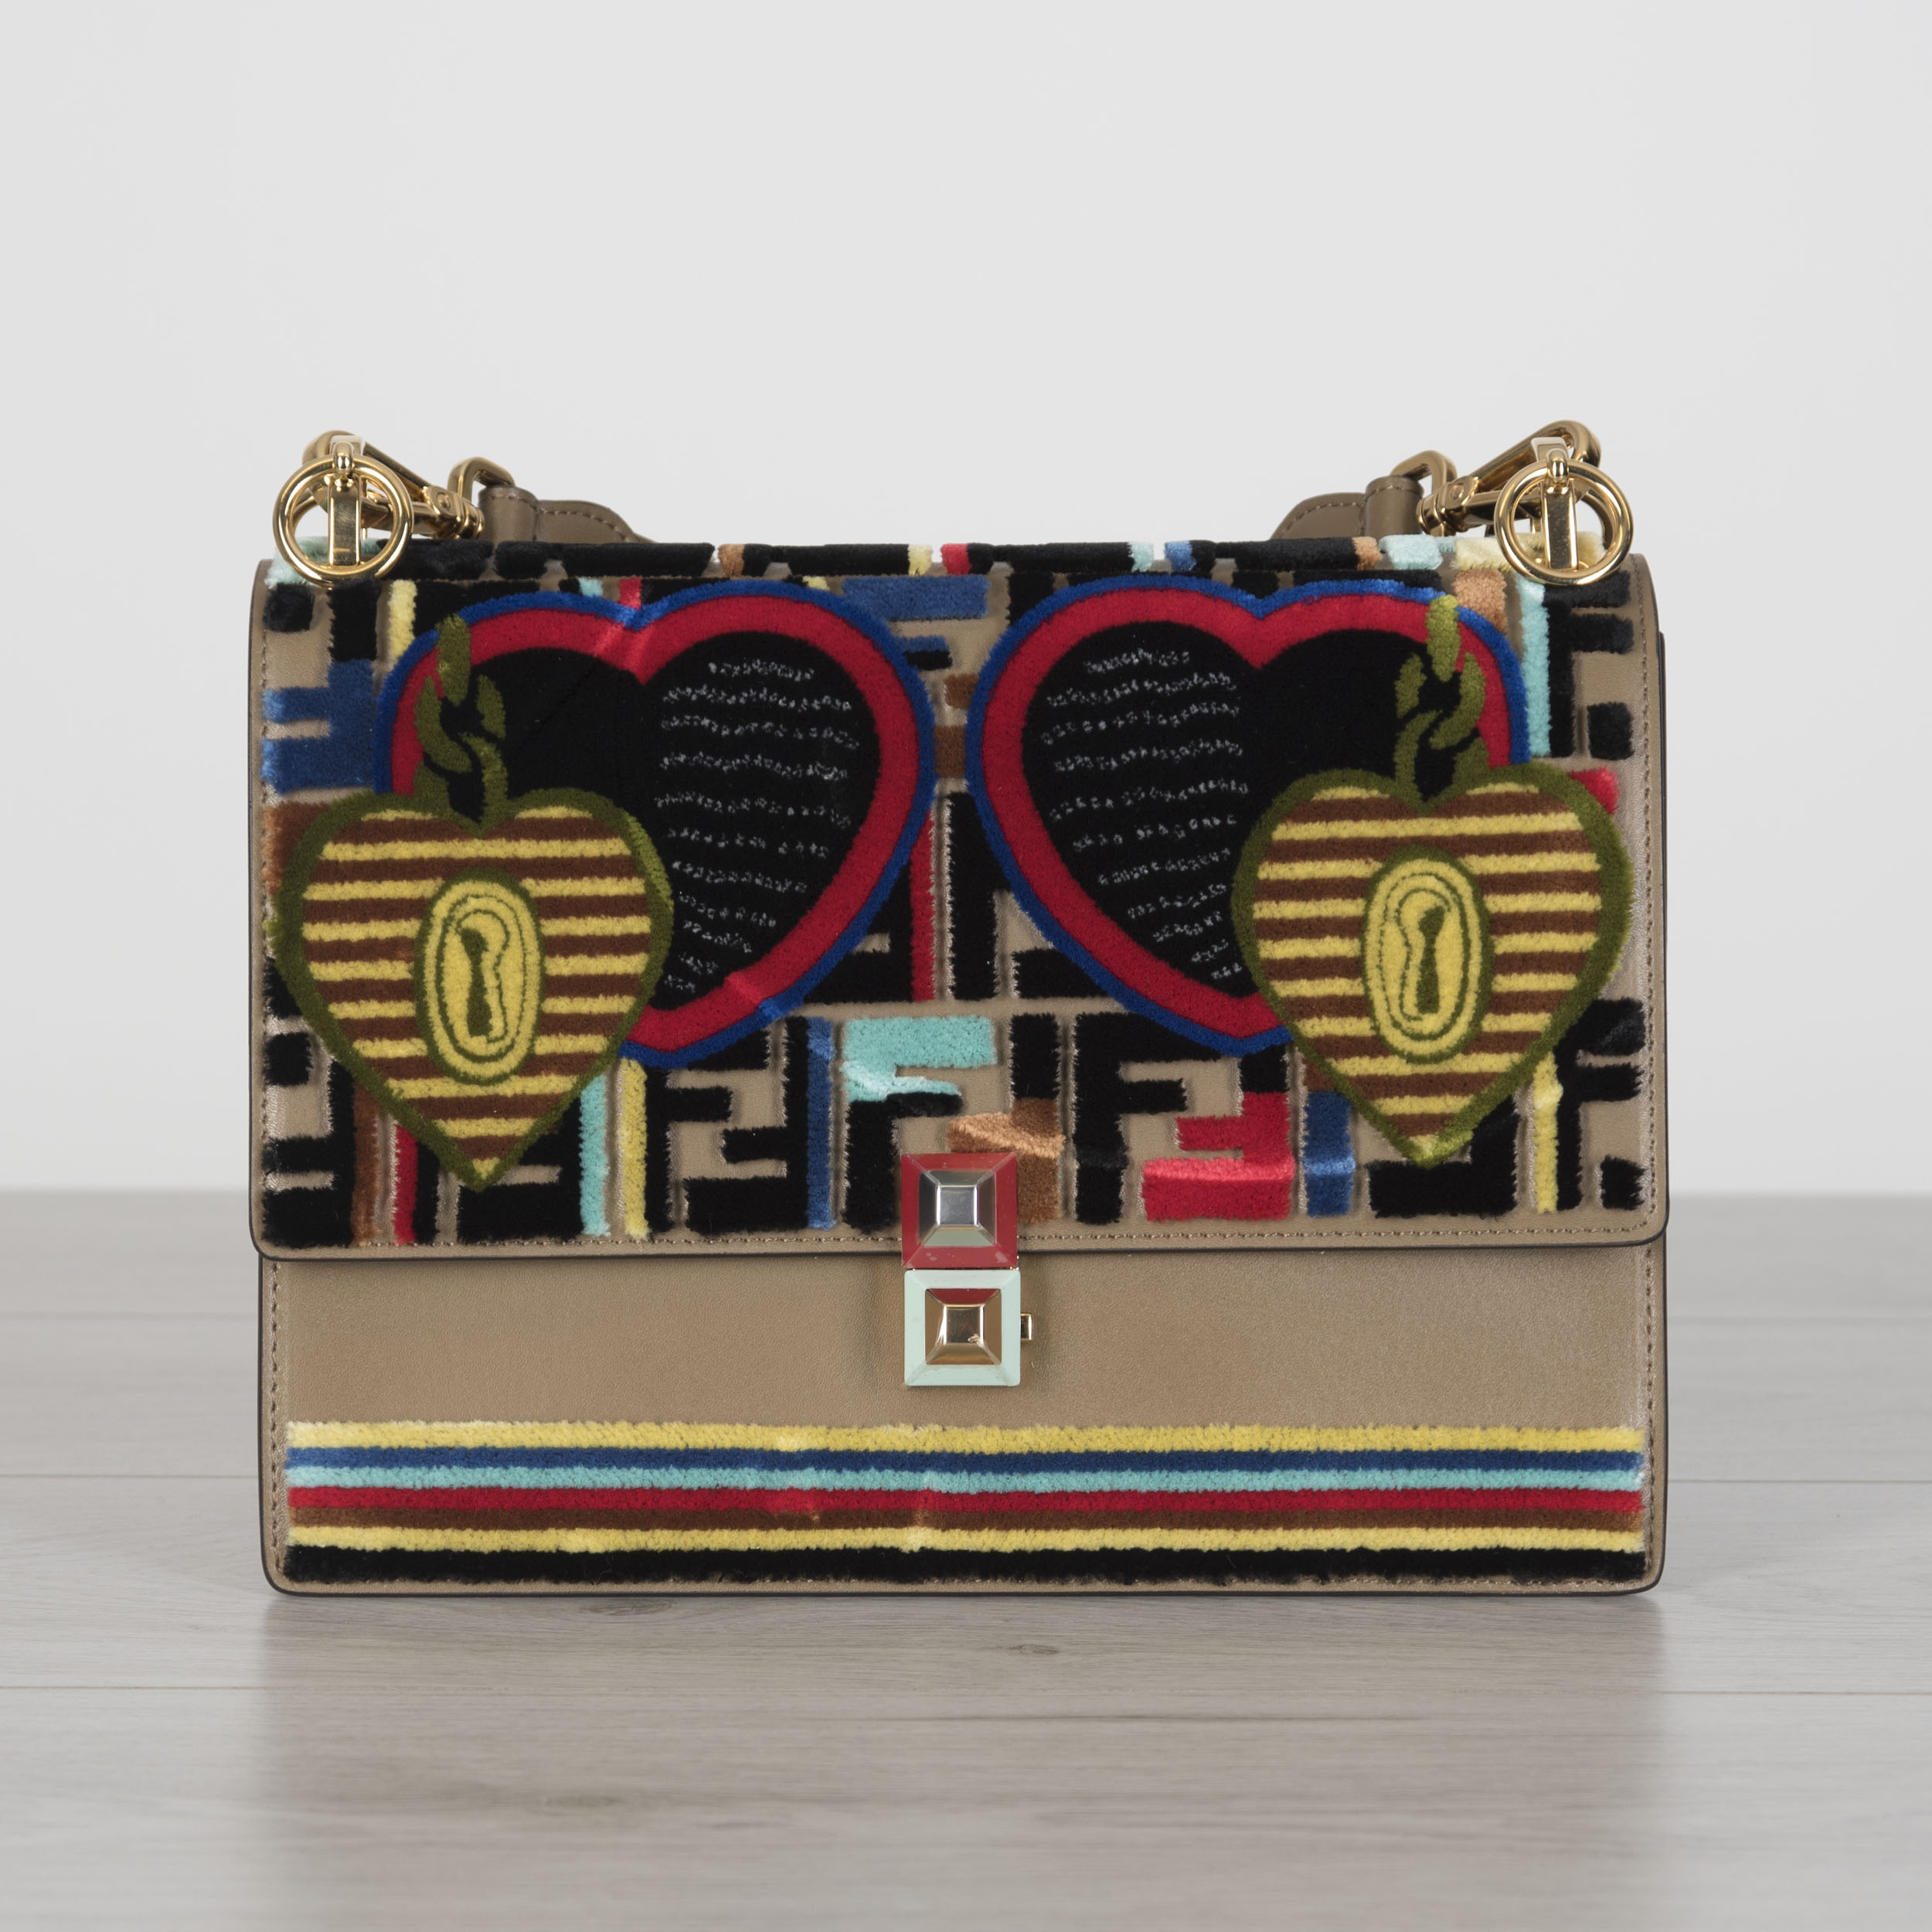 5b3194af828b Details about FENDI 3690  Medium Kan I Liberty With Velvet FF Logo  Embroidery In Brown Leather